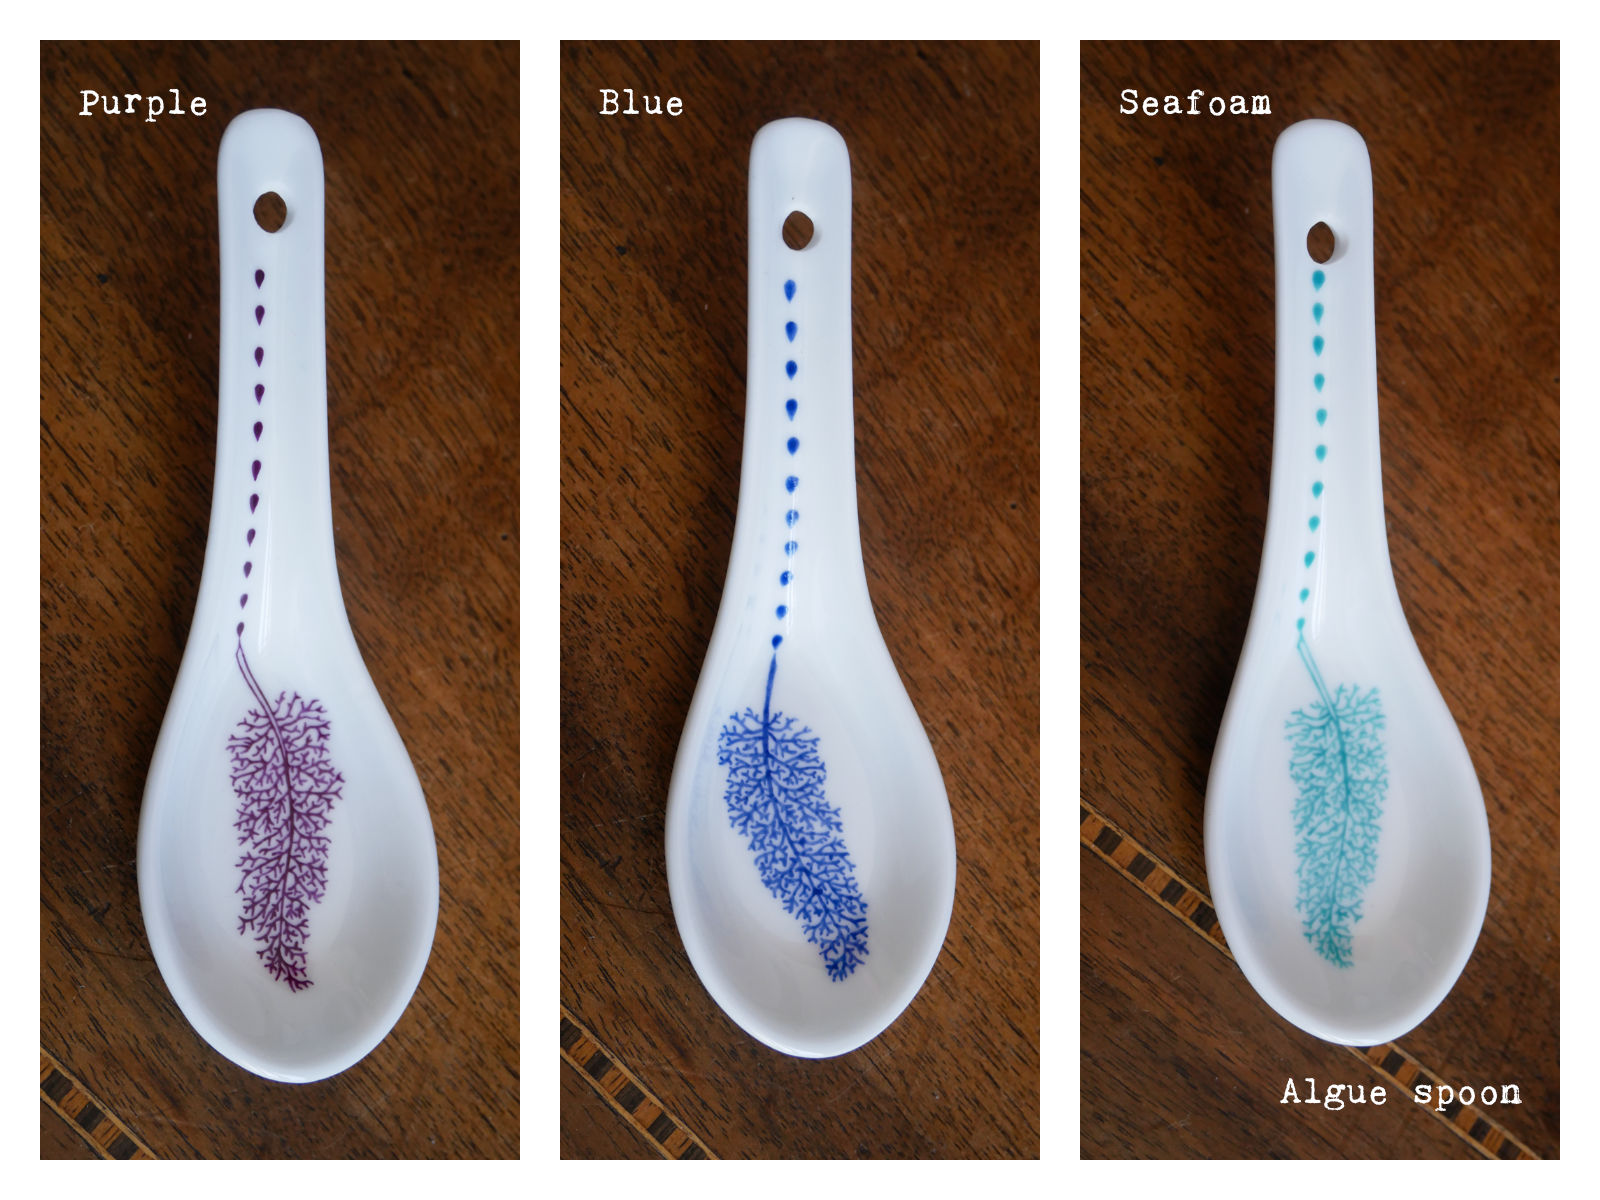 "Algue spoons in purple, blue and seafoam from ""Enchanteresse"", a collection of painted porcelains by messalyn."